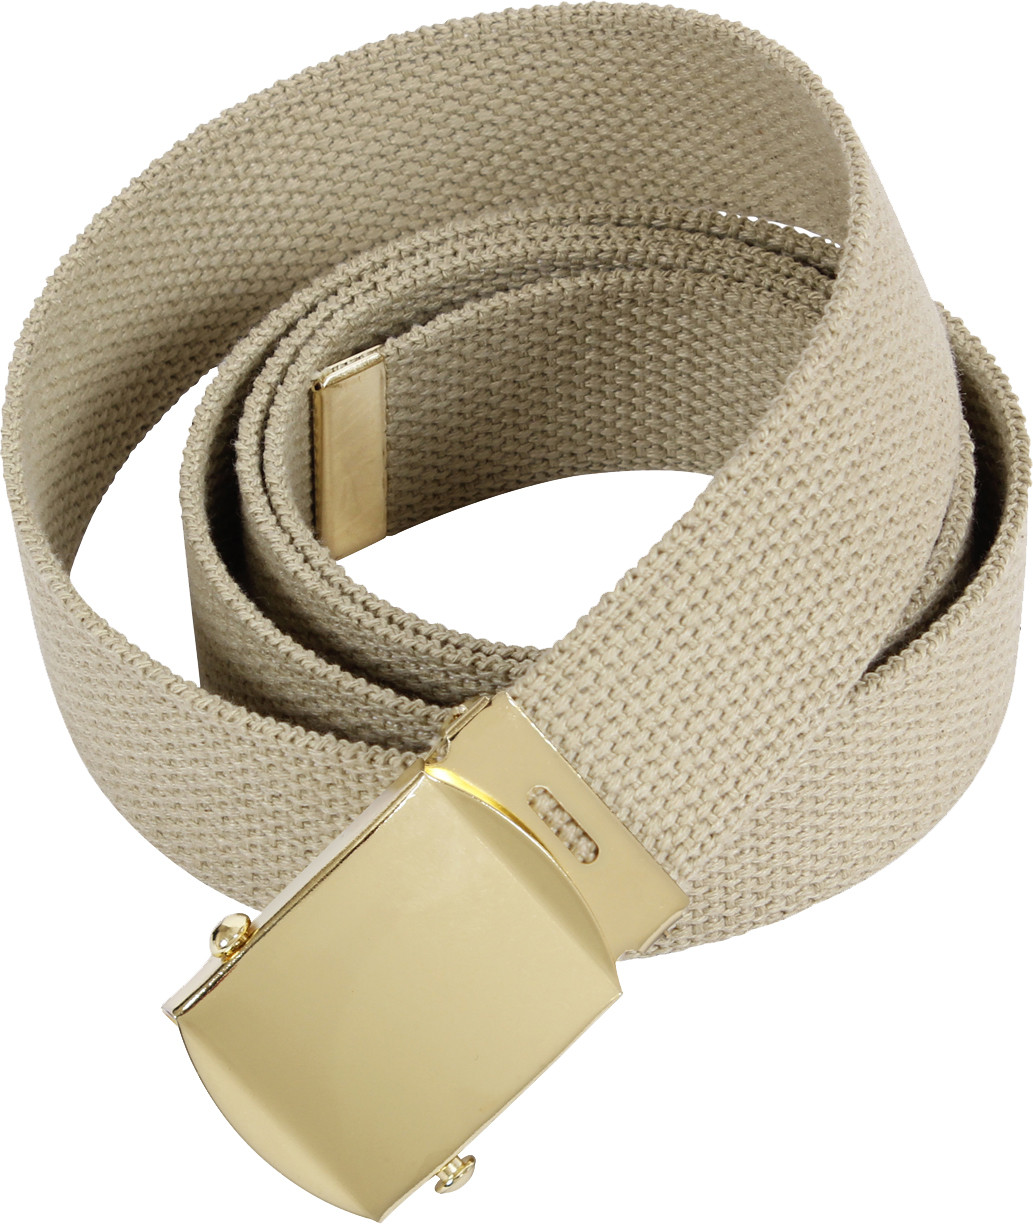 Khaki Military Web Belt with Brass Buckle 70770f1c9ba